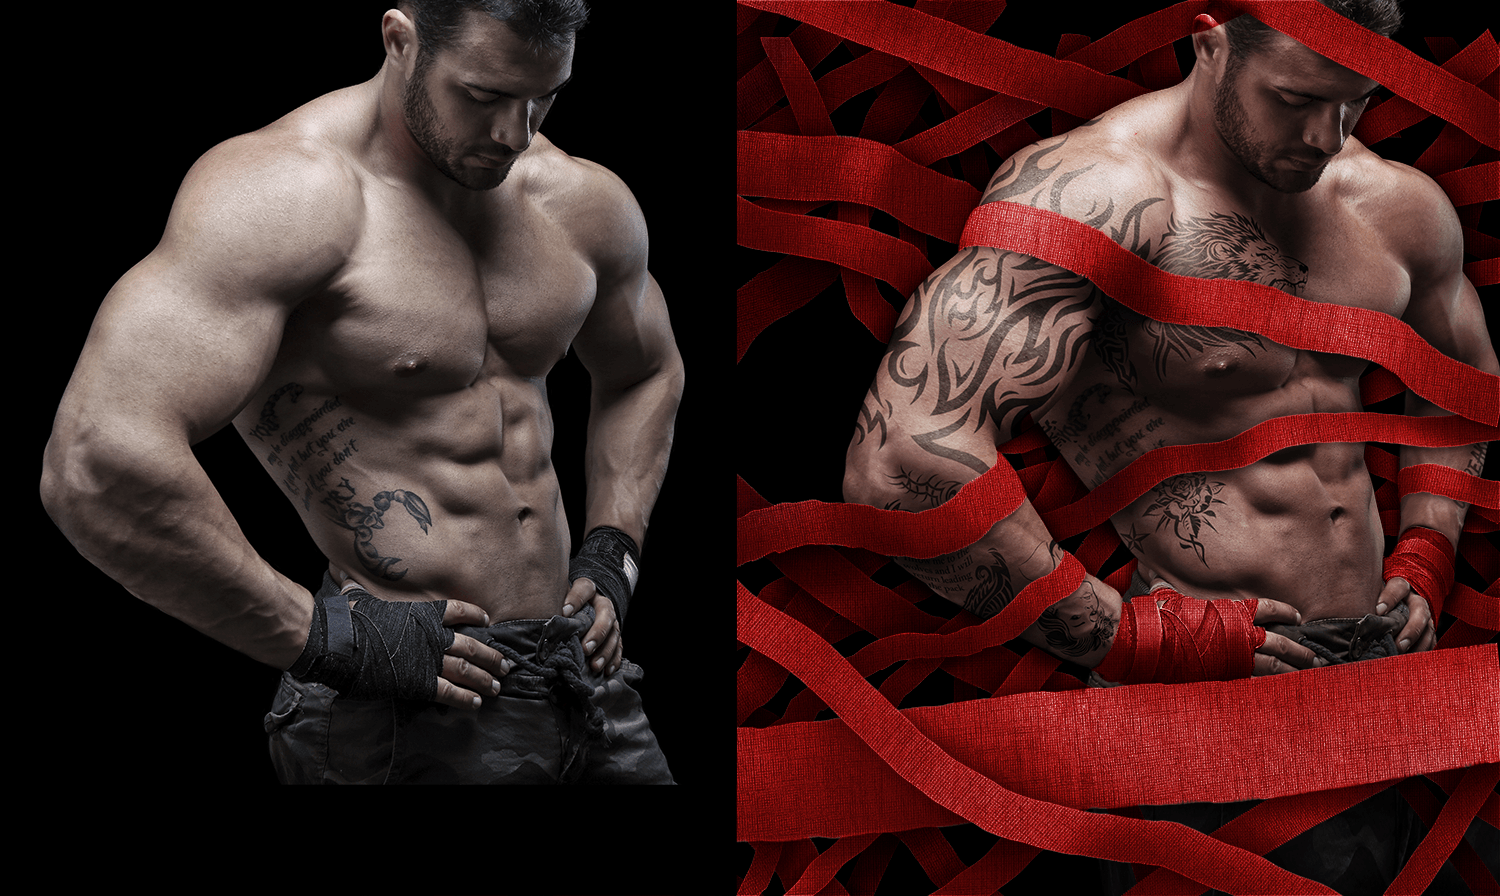 Color balancing, custom tattoos, frequency separation, hair retouching, illustrated cloth background